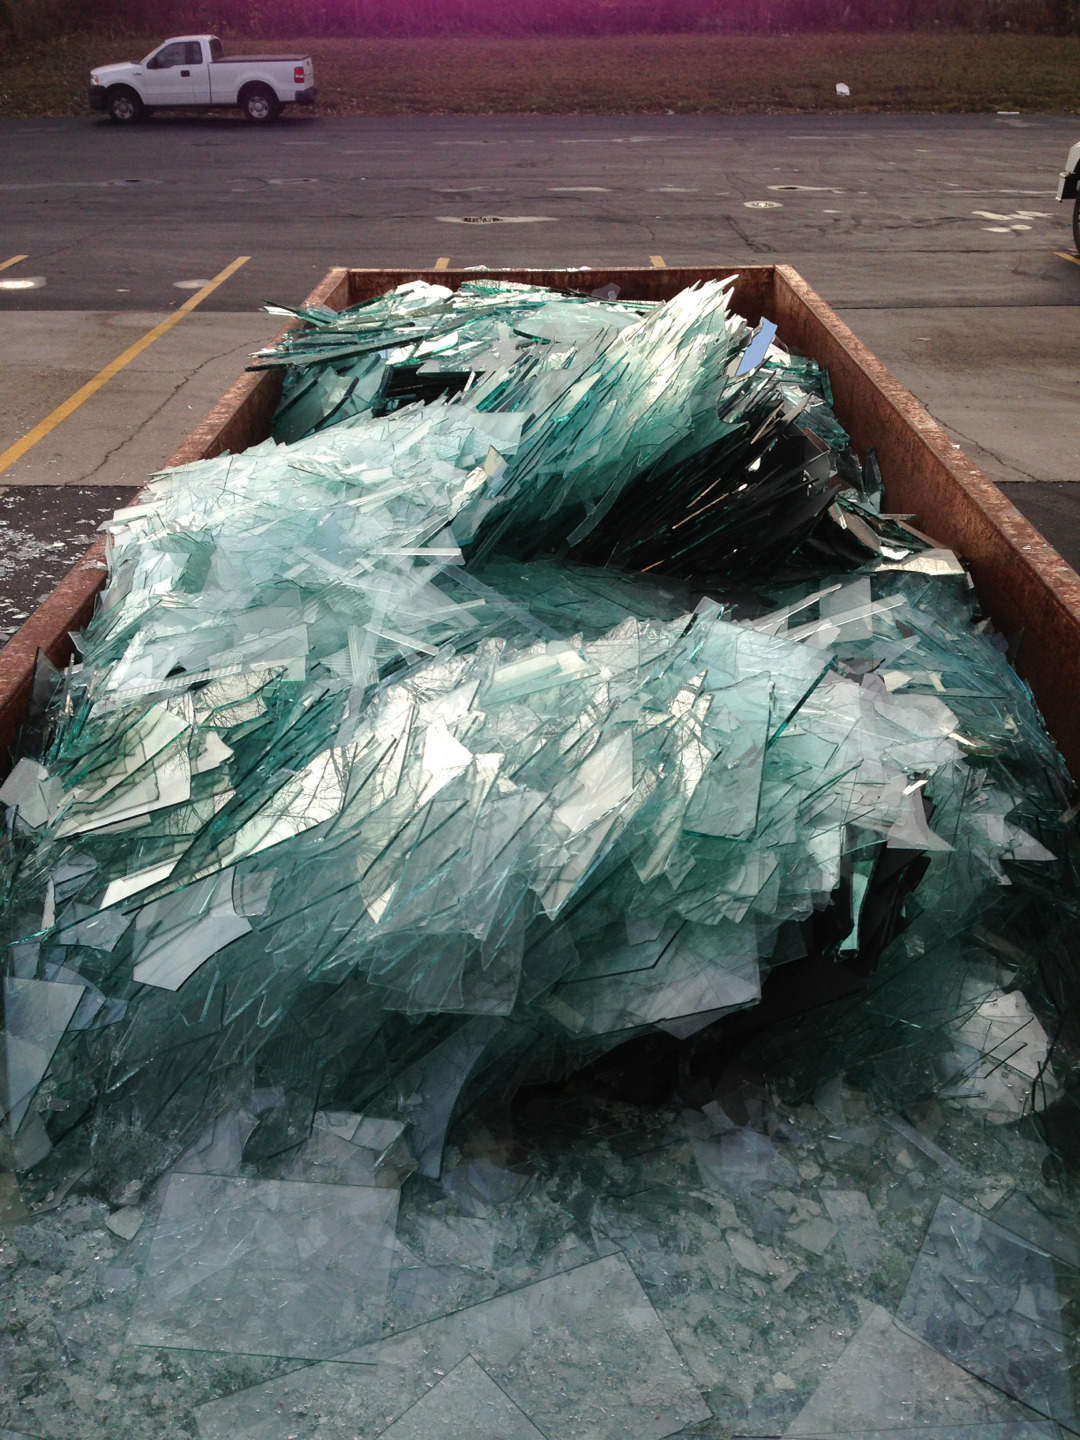 insooutso:  Recycling dumpster full of failed glass designs. Looks glacial.